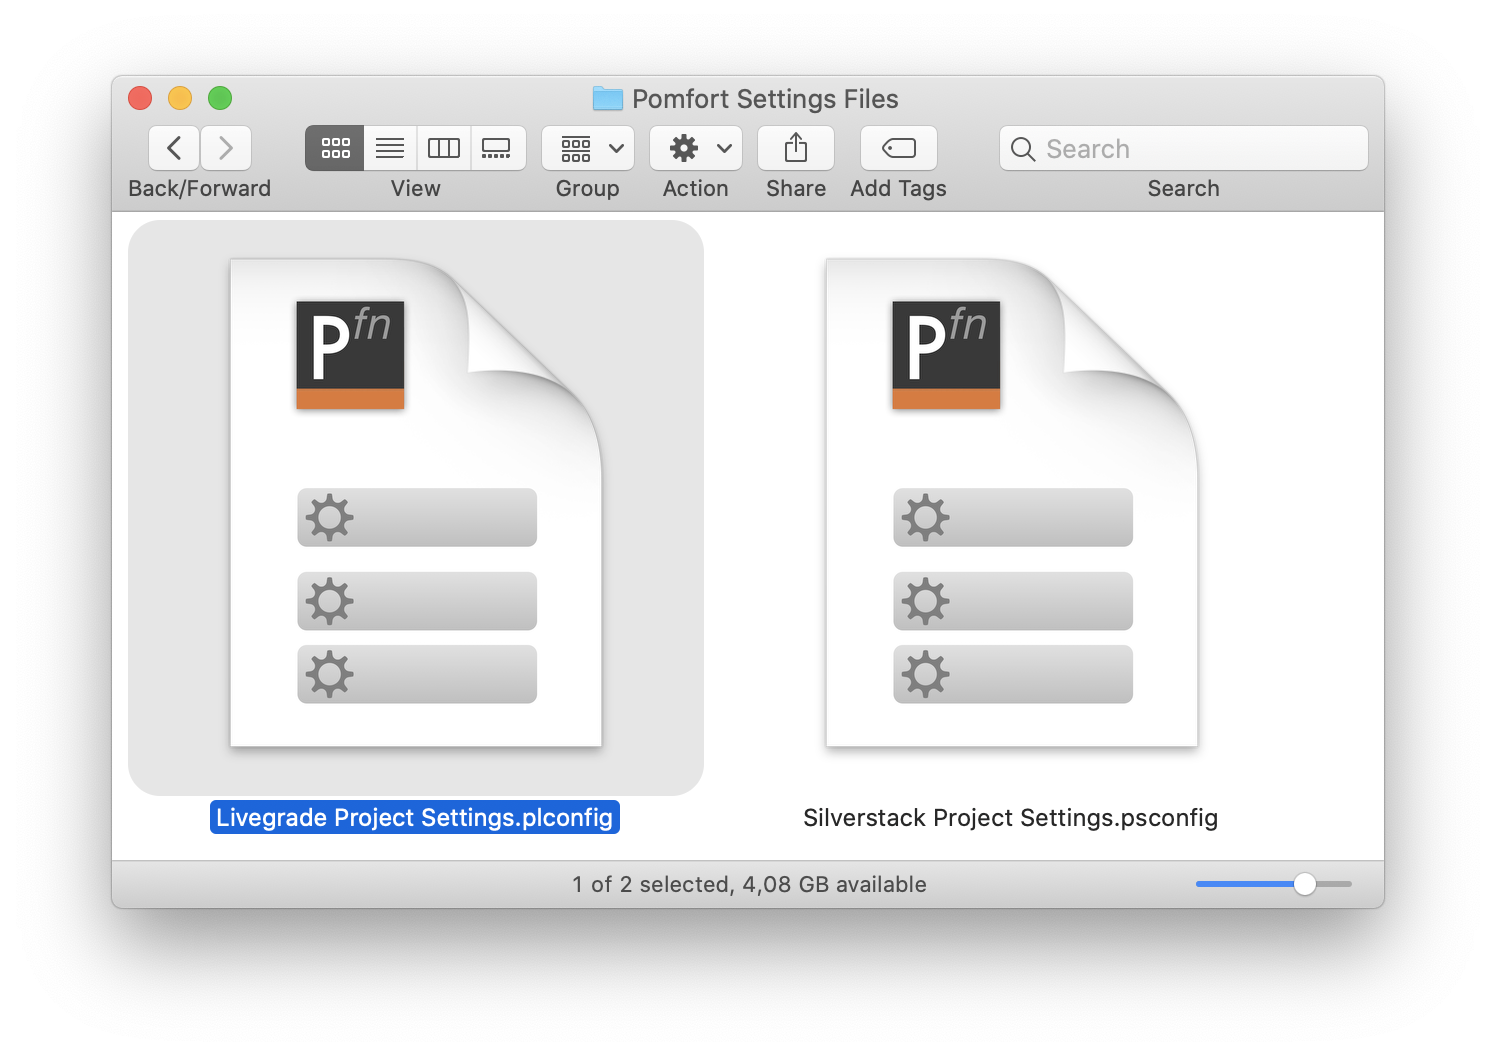 Using Pomfort Settings Files to Configure Your Application Setup